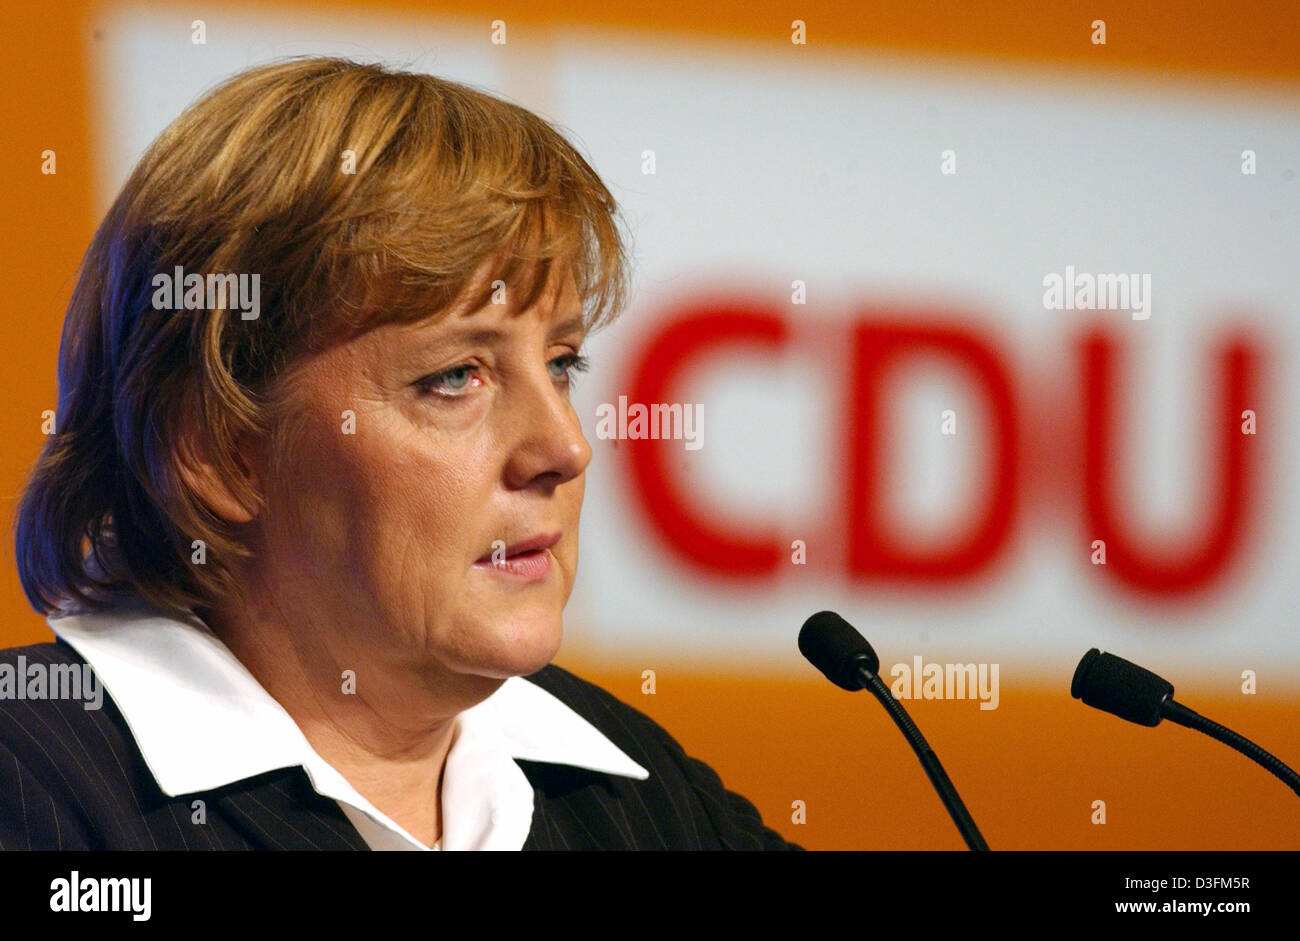 (dpa) - Angela Merkel, Leader of the German Christian Democratic Union (CDU), talks to delegates during the CDU's 18th party congress in Duesseldorf, Germany, 7 December 2004. The party congress took place under the motto 'Deutschlands Chancen nutzen' (to use Germany's chances). Stock Photo